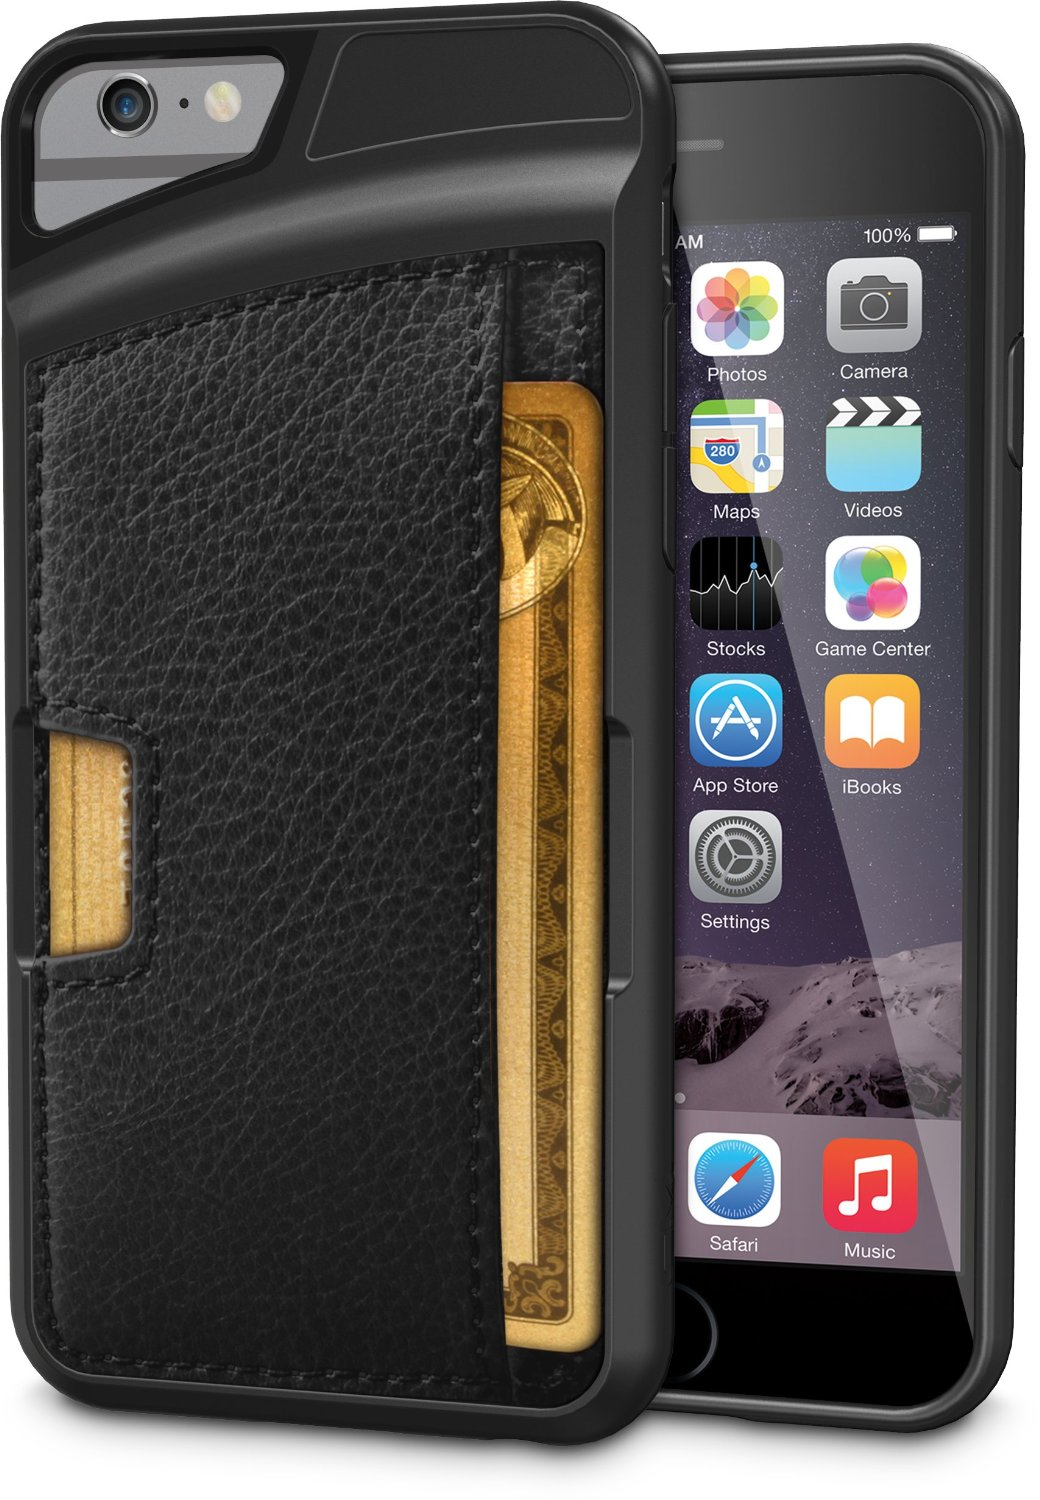 sale retailer 4a952 078de The best wallet cases for iPhone 6s